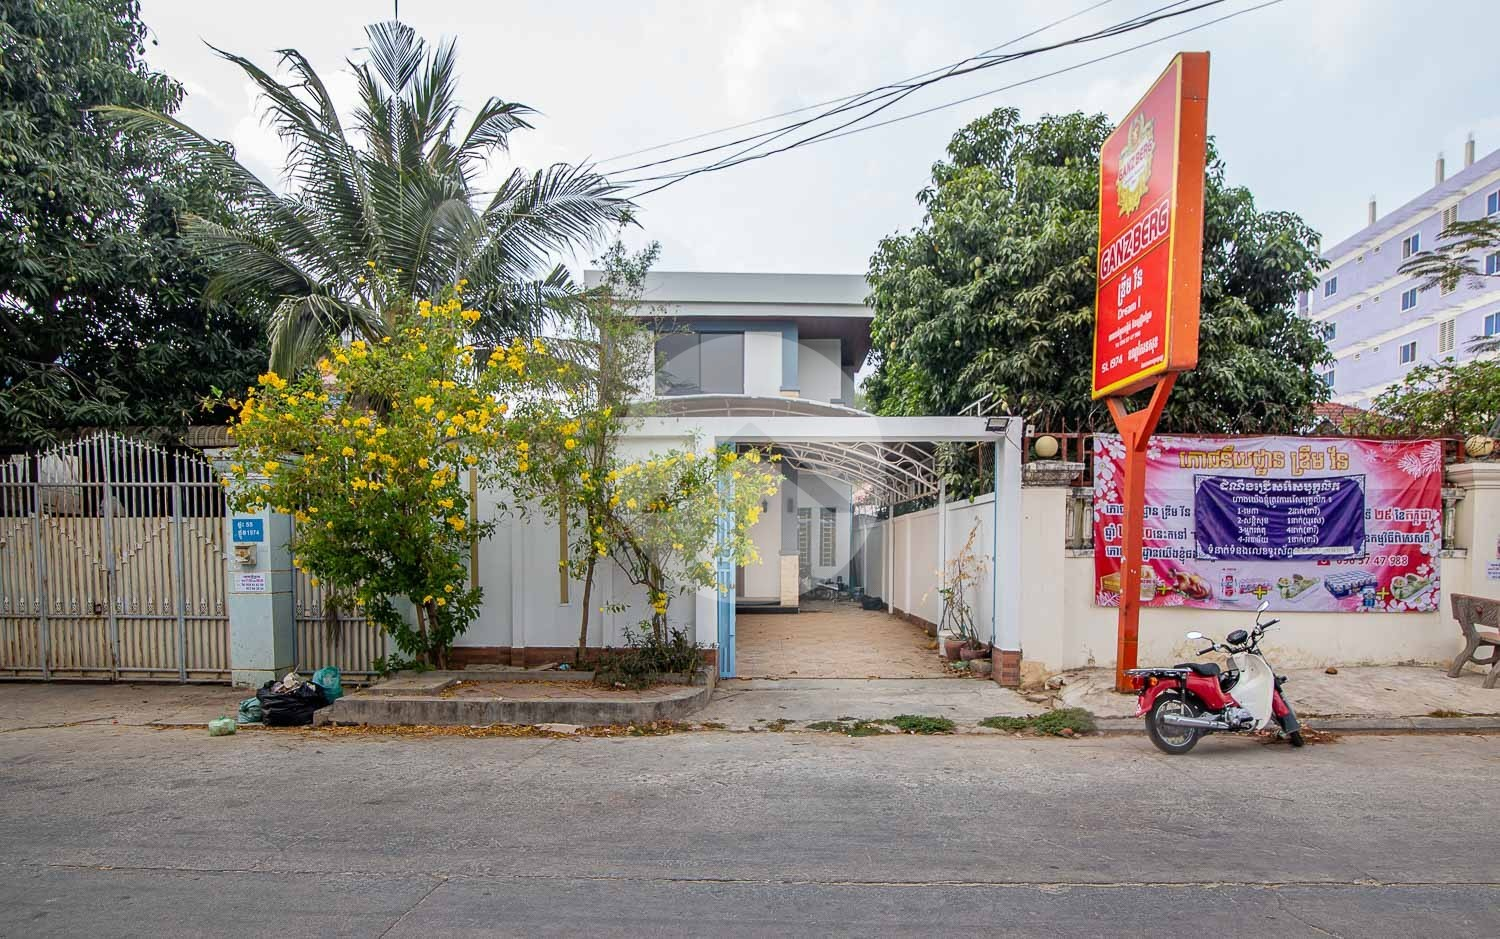 3 Bedroom House For Rent - Sen Sok, Phnom Penh